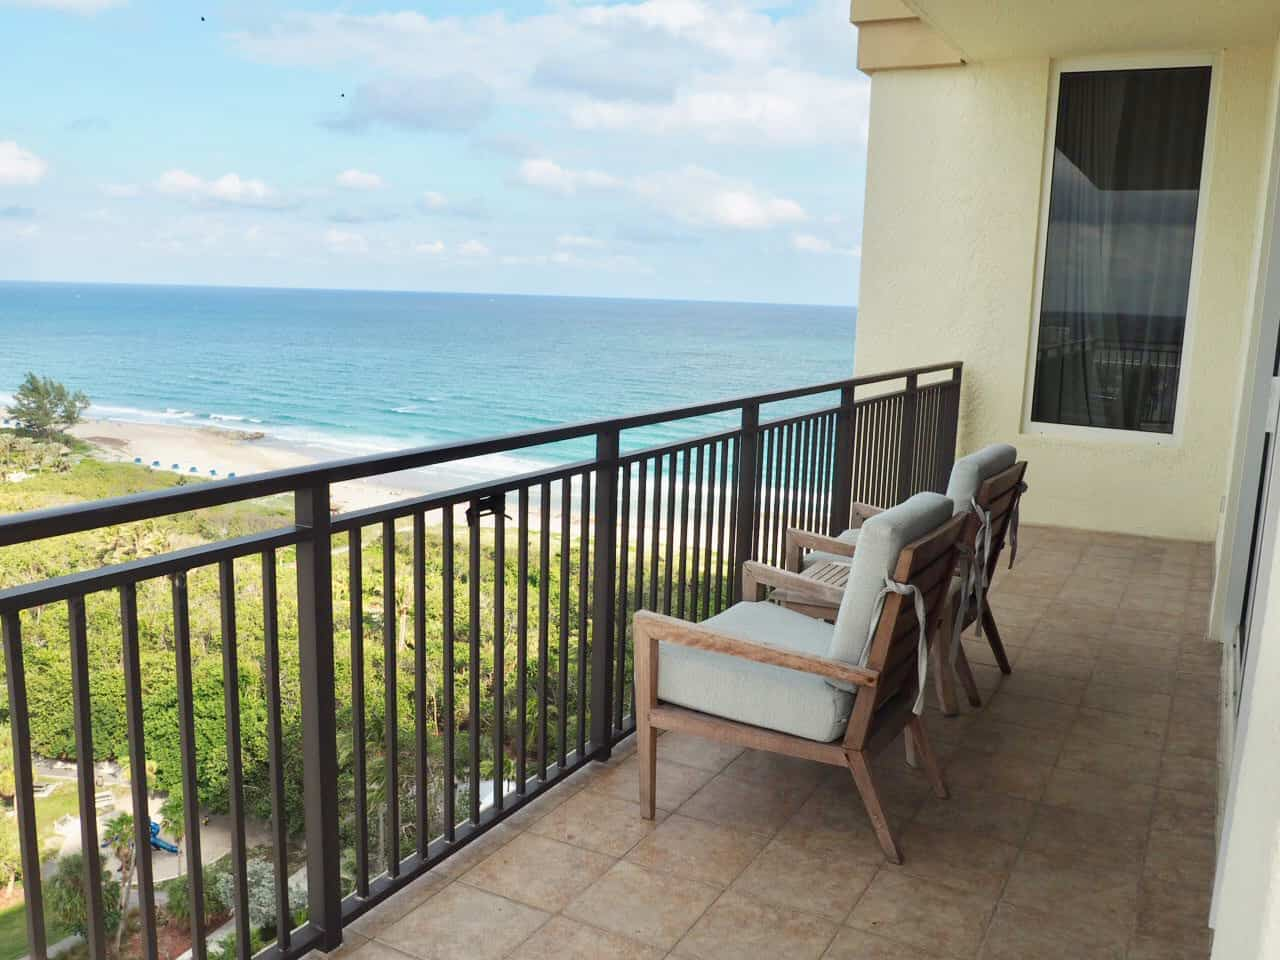 The Perfect Beach Getaway Palm Beach Marriott Singer Island Beach